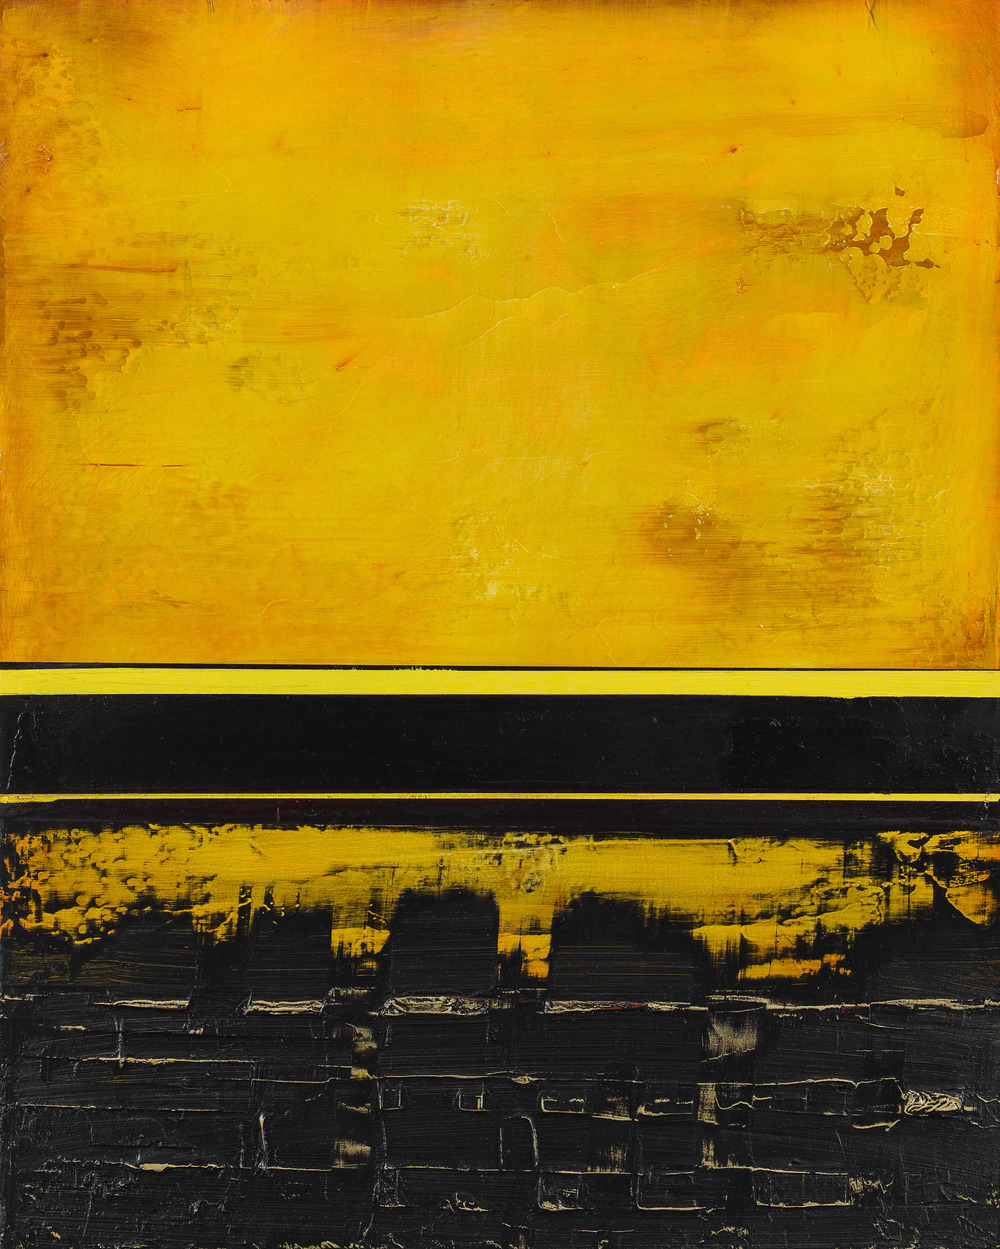 "Nola Zirin Saffron Sky, 2012 Oil and wax on panel 20"" x 16"" Retail Value: $3,000 Opening Bid: $1,000"